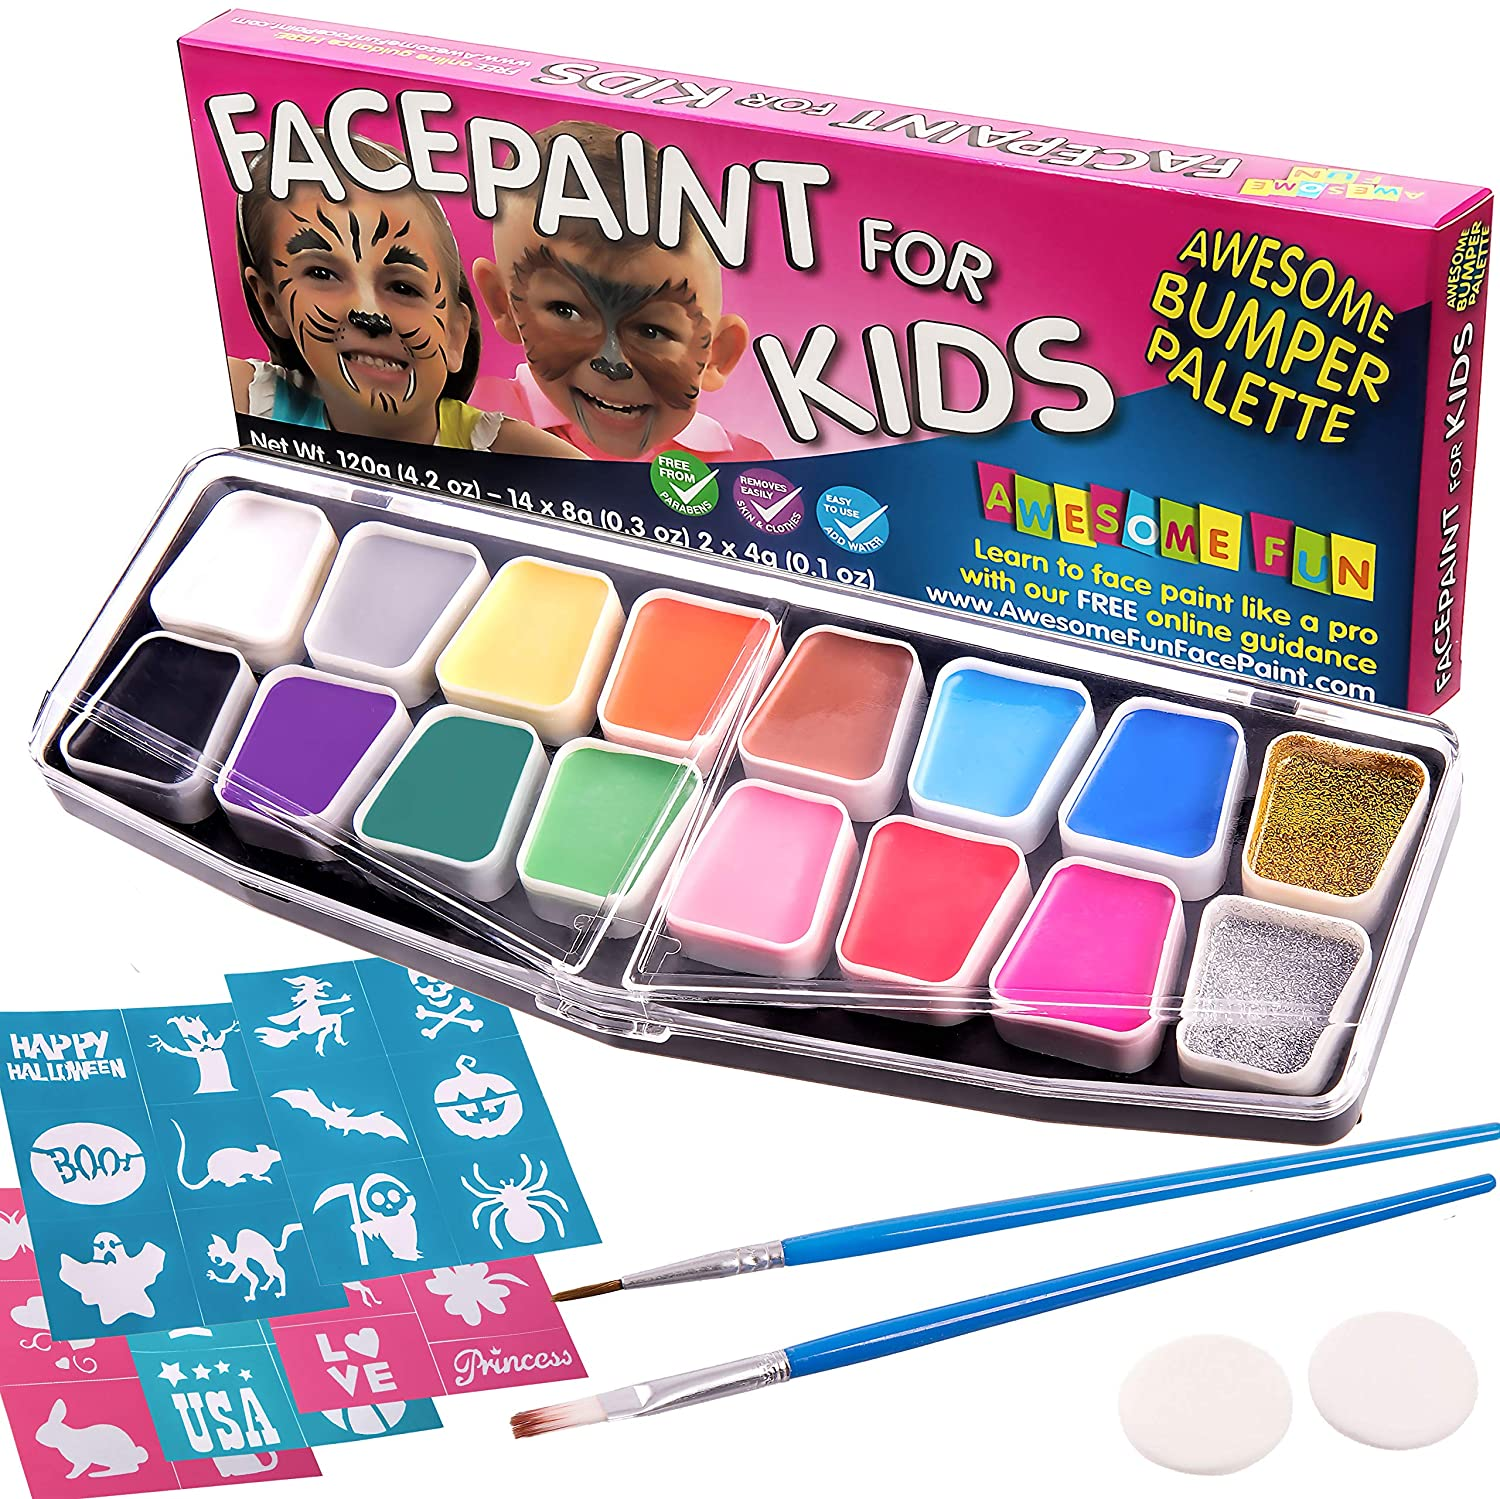 Halloween Face Paint Kit Large | Face Painting Party Set with 32 Stencils, 2 Brushes, 2 Sponges 14 Colors, 2 Glitters & Make-Up Case. Bumper 16-Pack Gift for Kids Free eBook Safe Non-Toxic Water-Based Thrive Enterprises